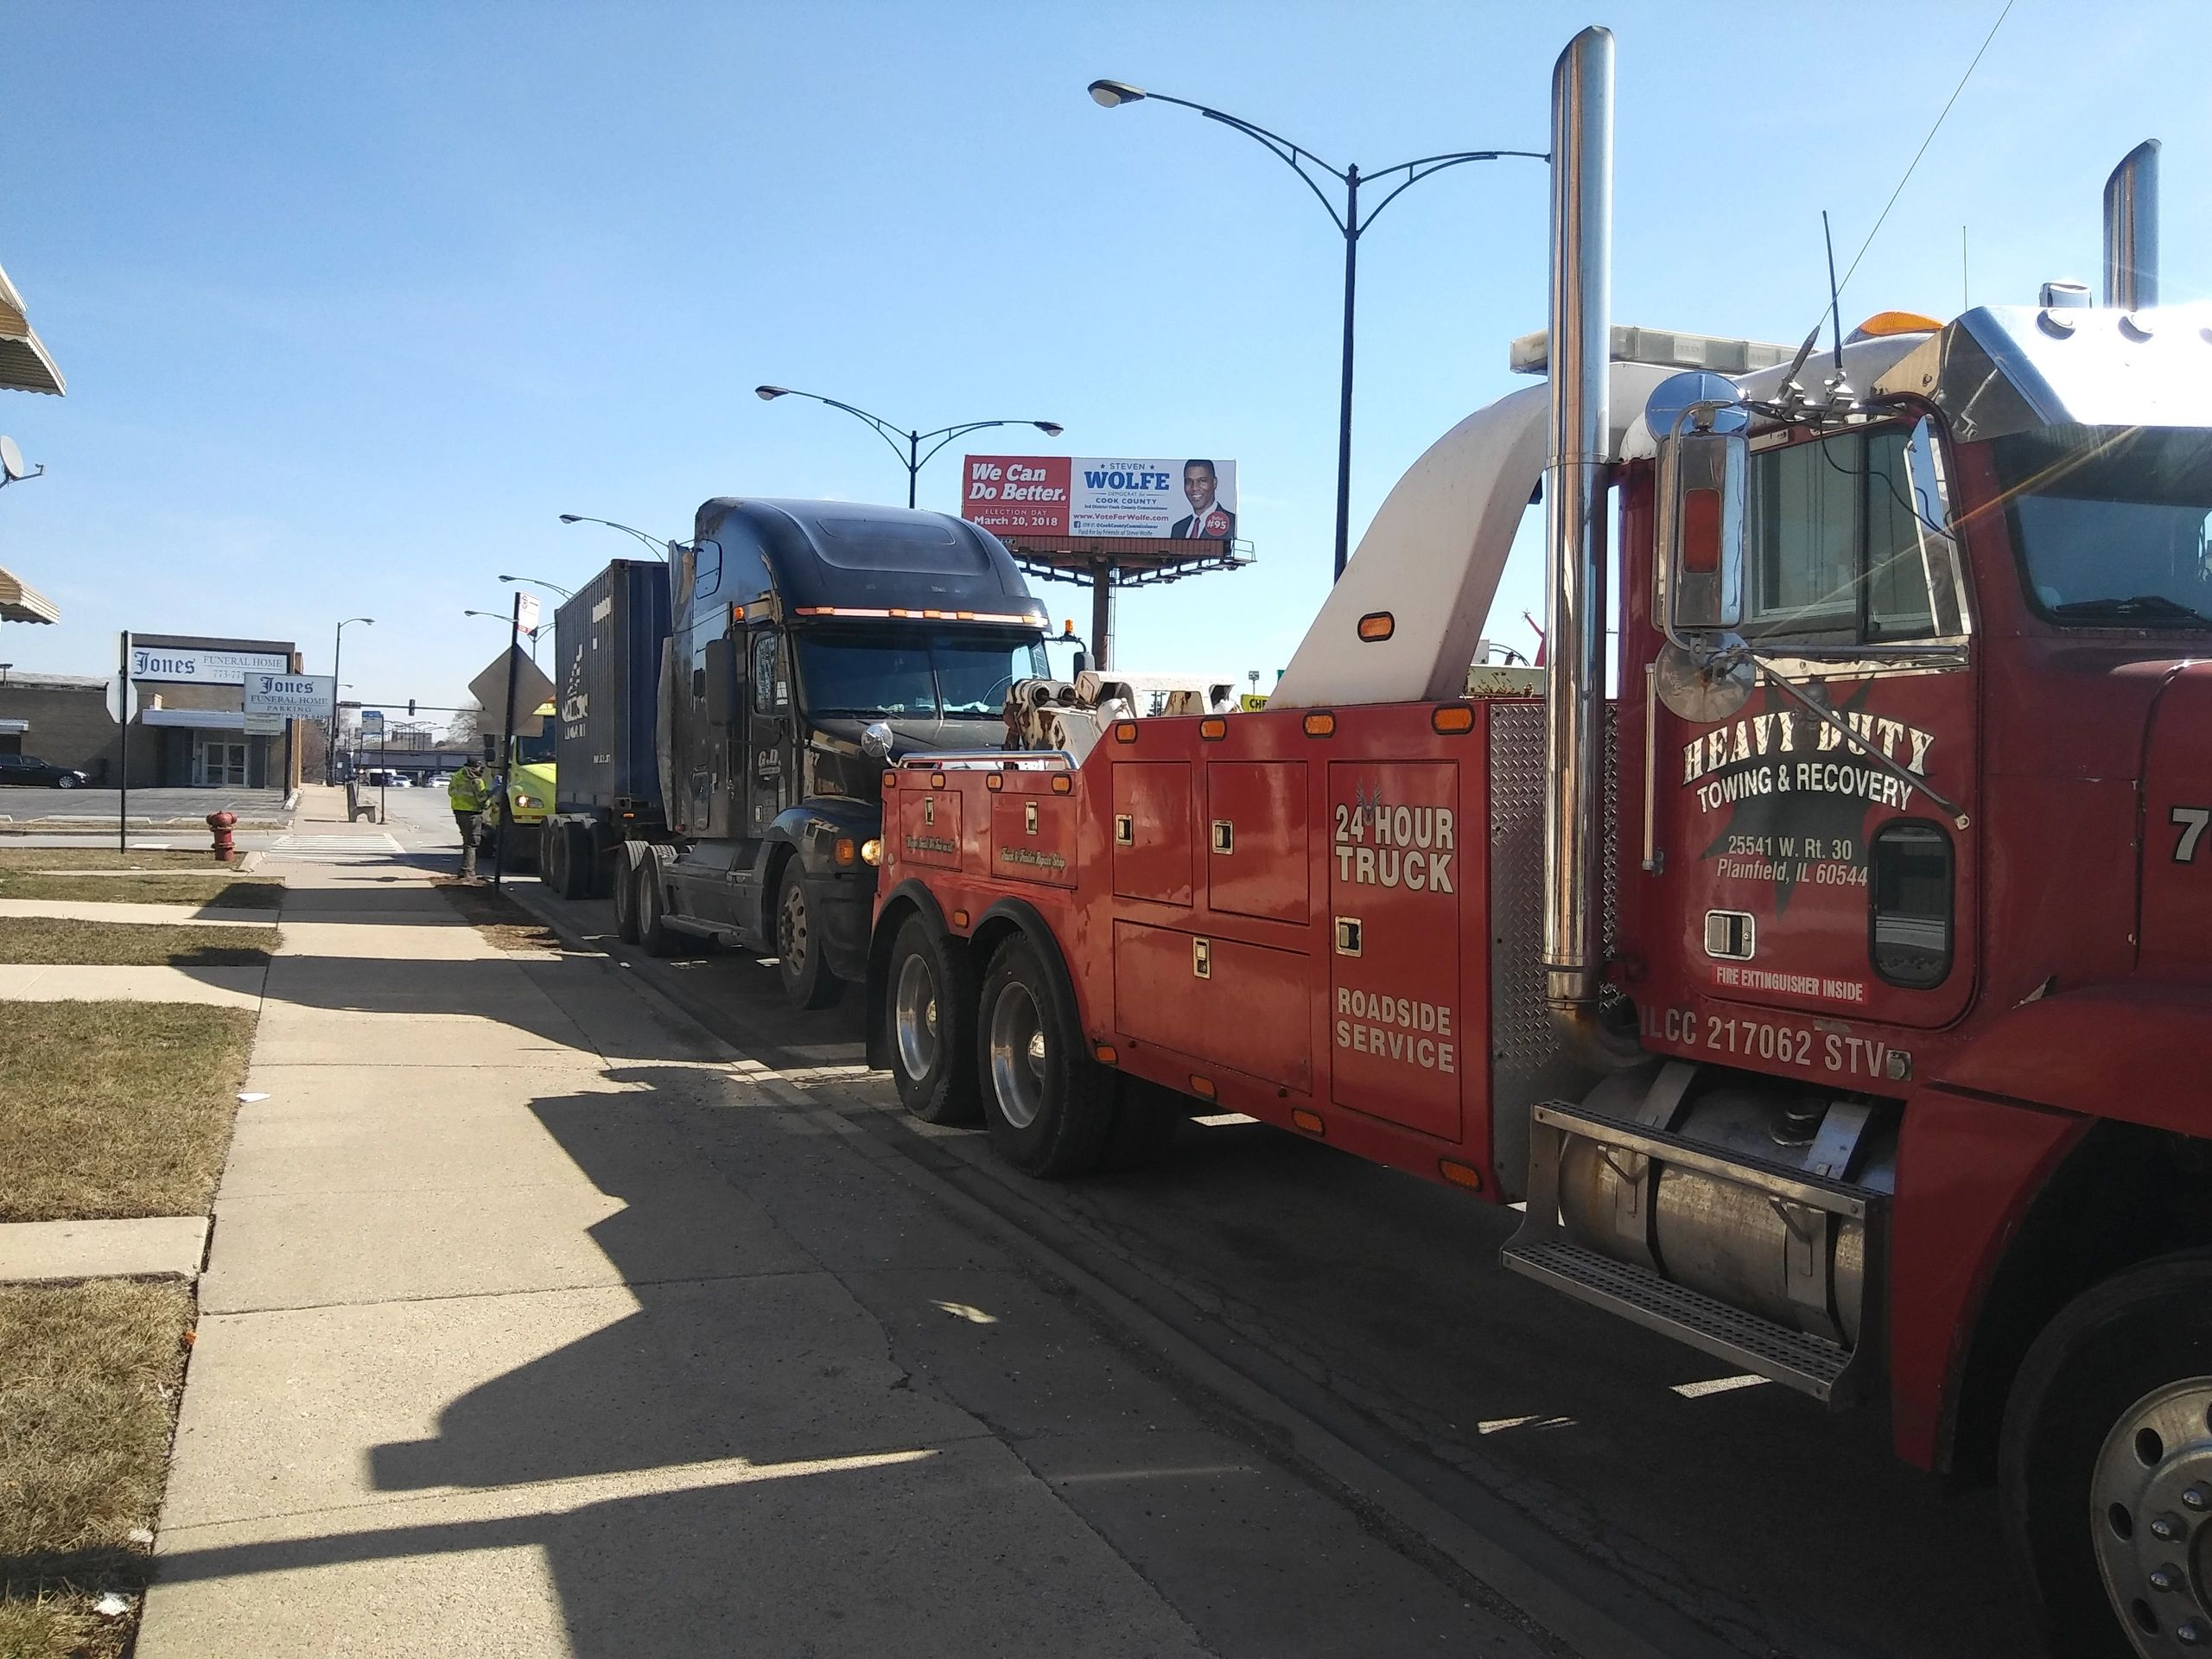 Semi Truck Towing Heavy Duty Towing & Recovery Inc